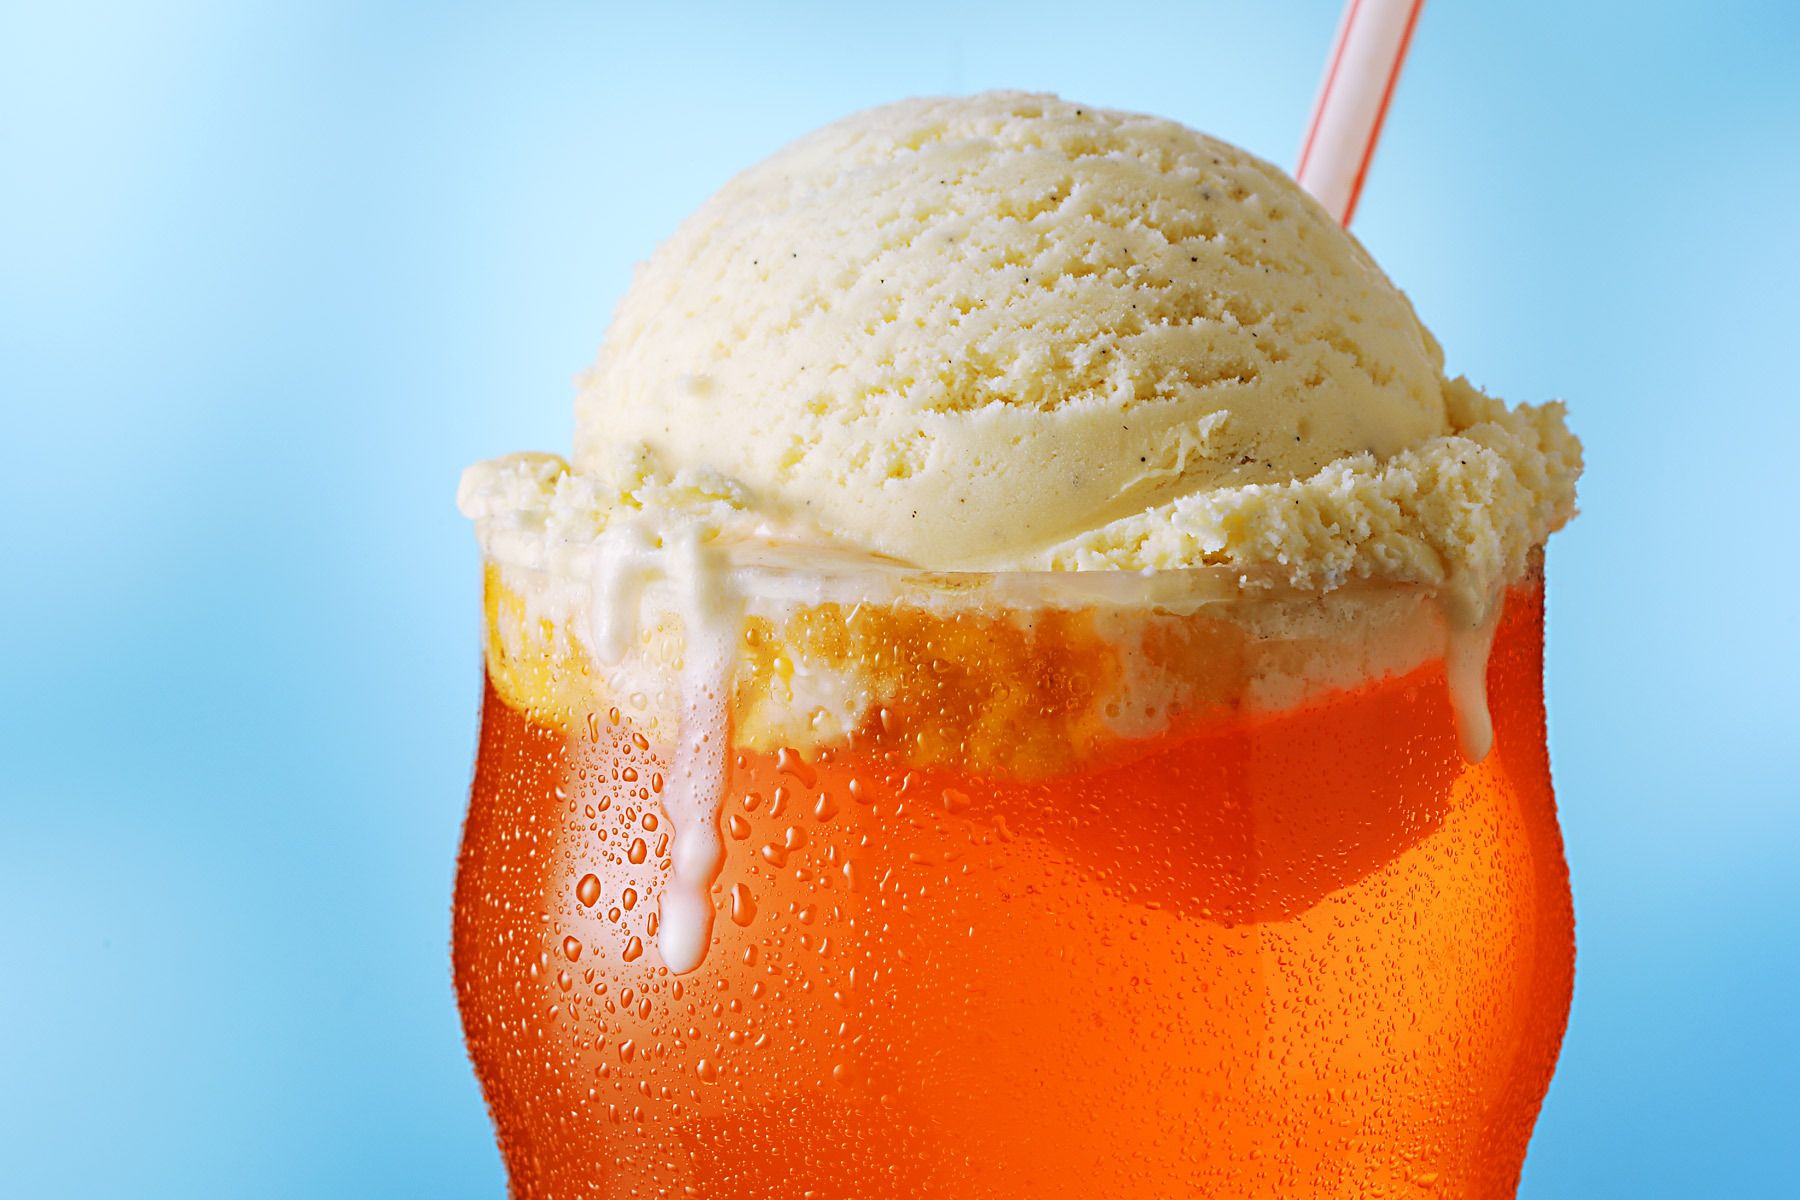 French Vanilla Ice Cream float